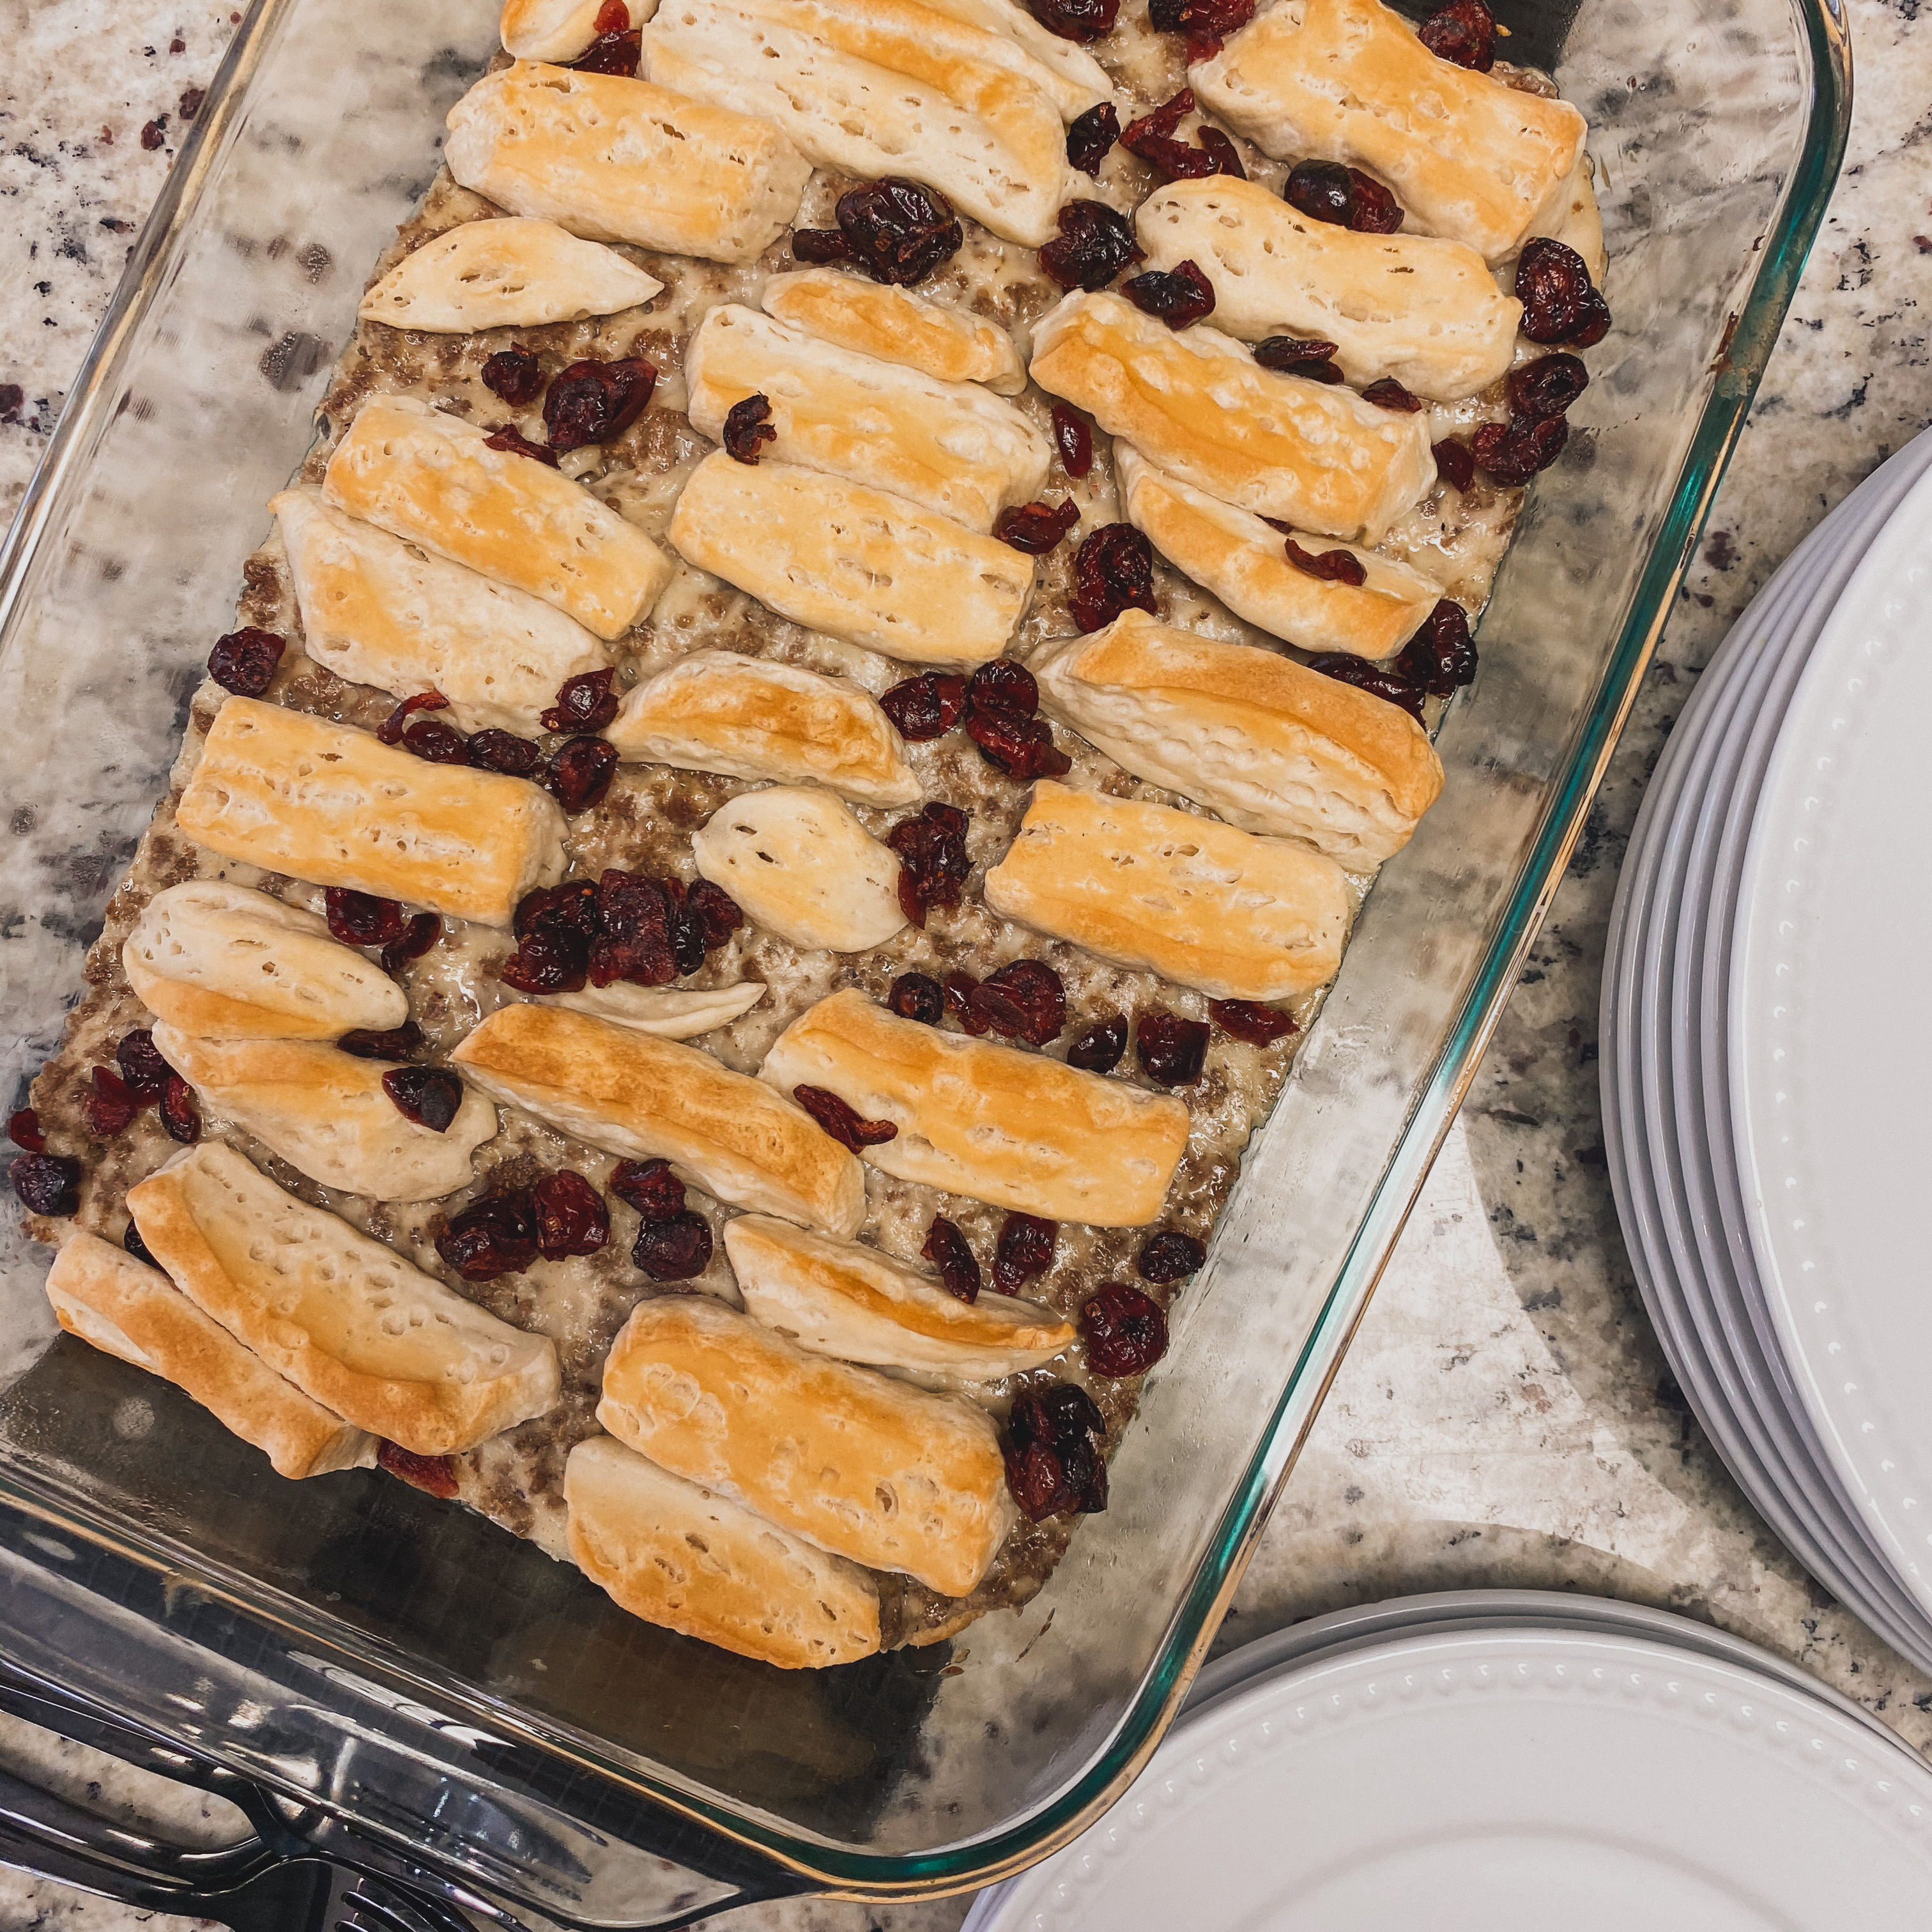 Sausage, Cranberry, and Biscuit Breakfast Bake StevenMSal